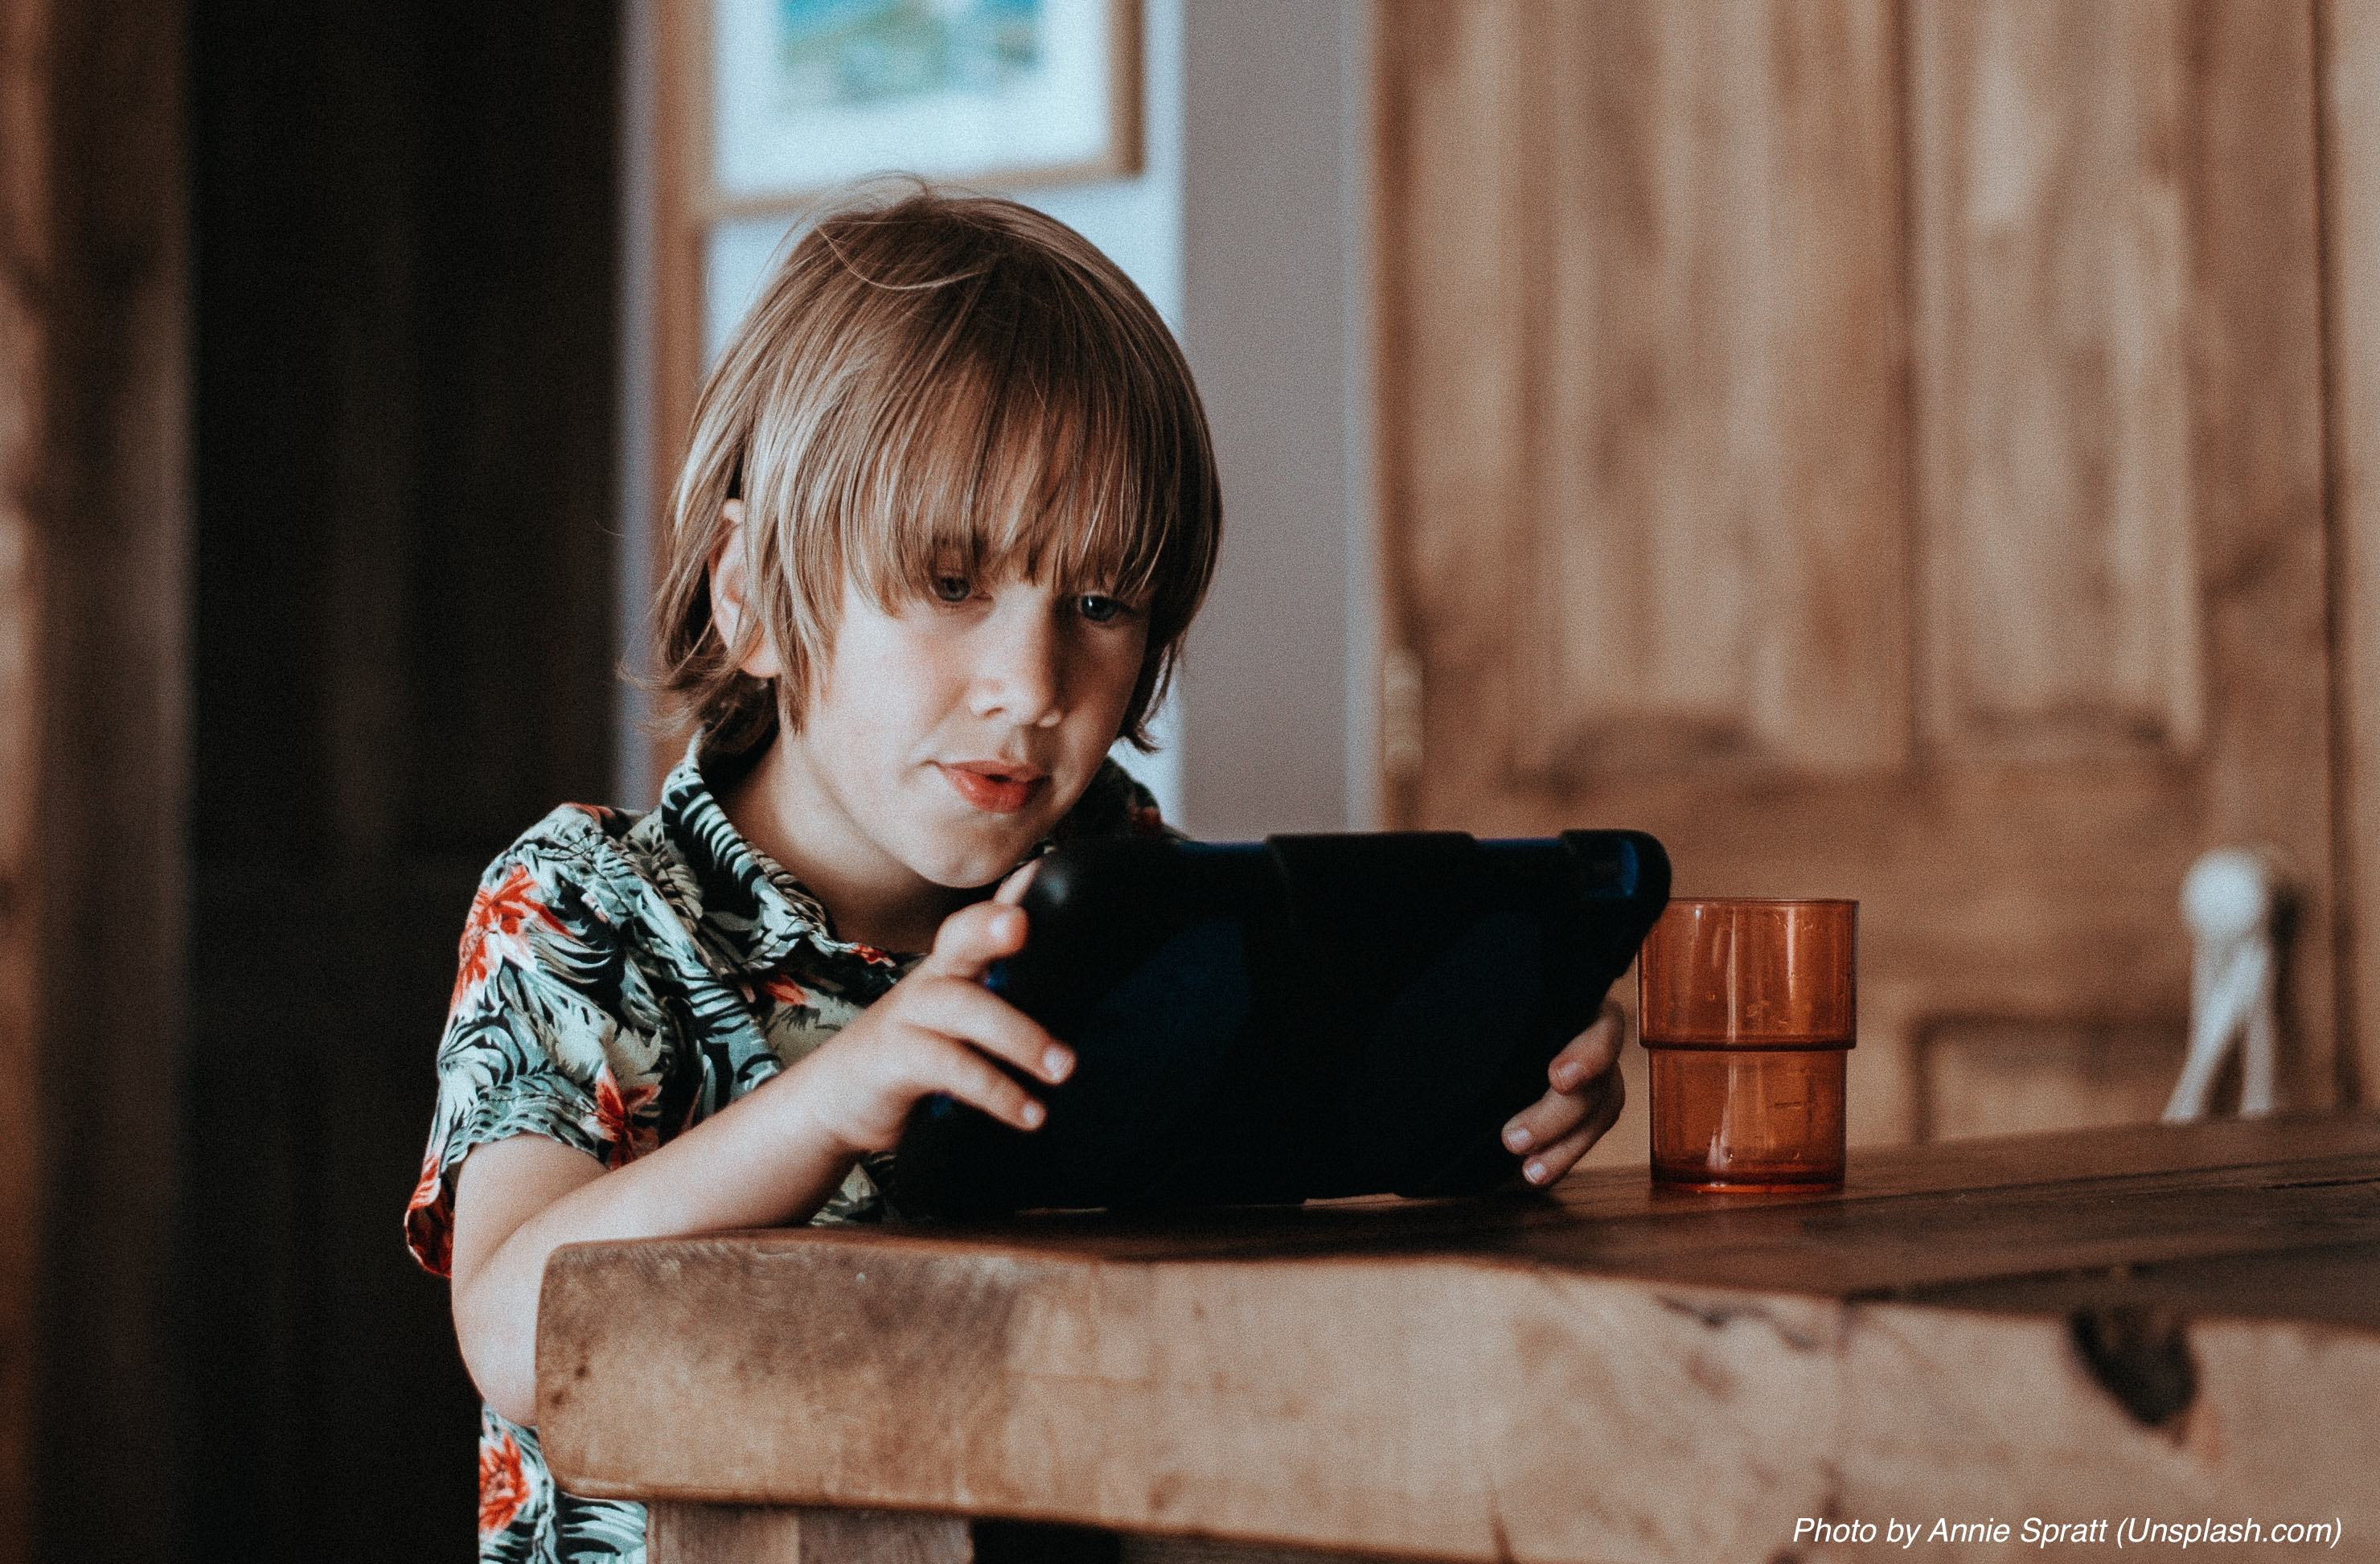 Child sitting at table using a tablet commputer